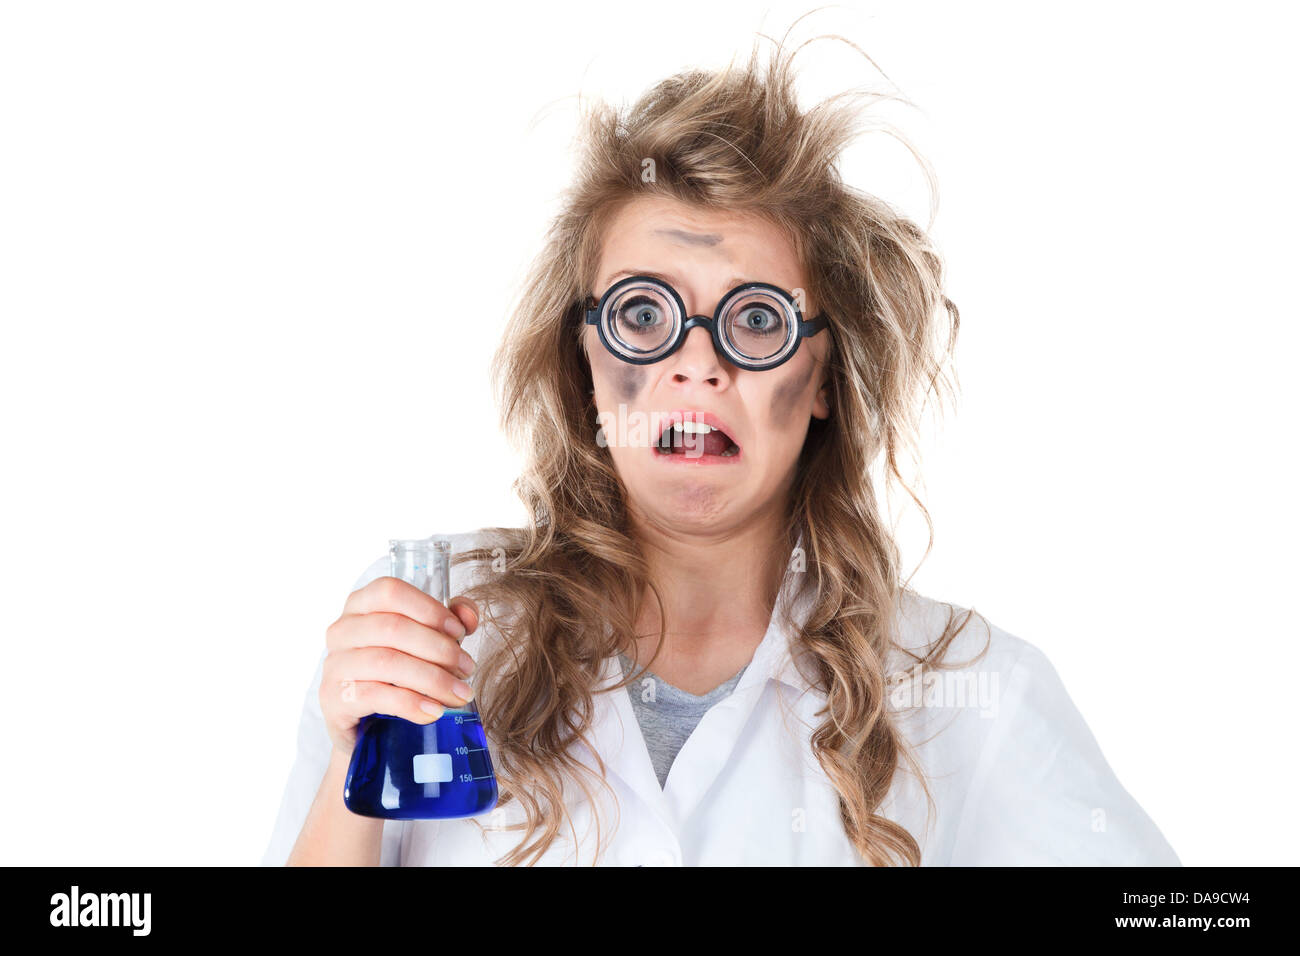 Crazy chemist woman with disheveled hair and vial in hands - Stock Image